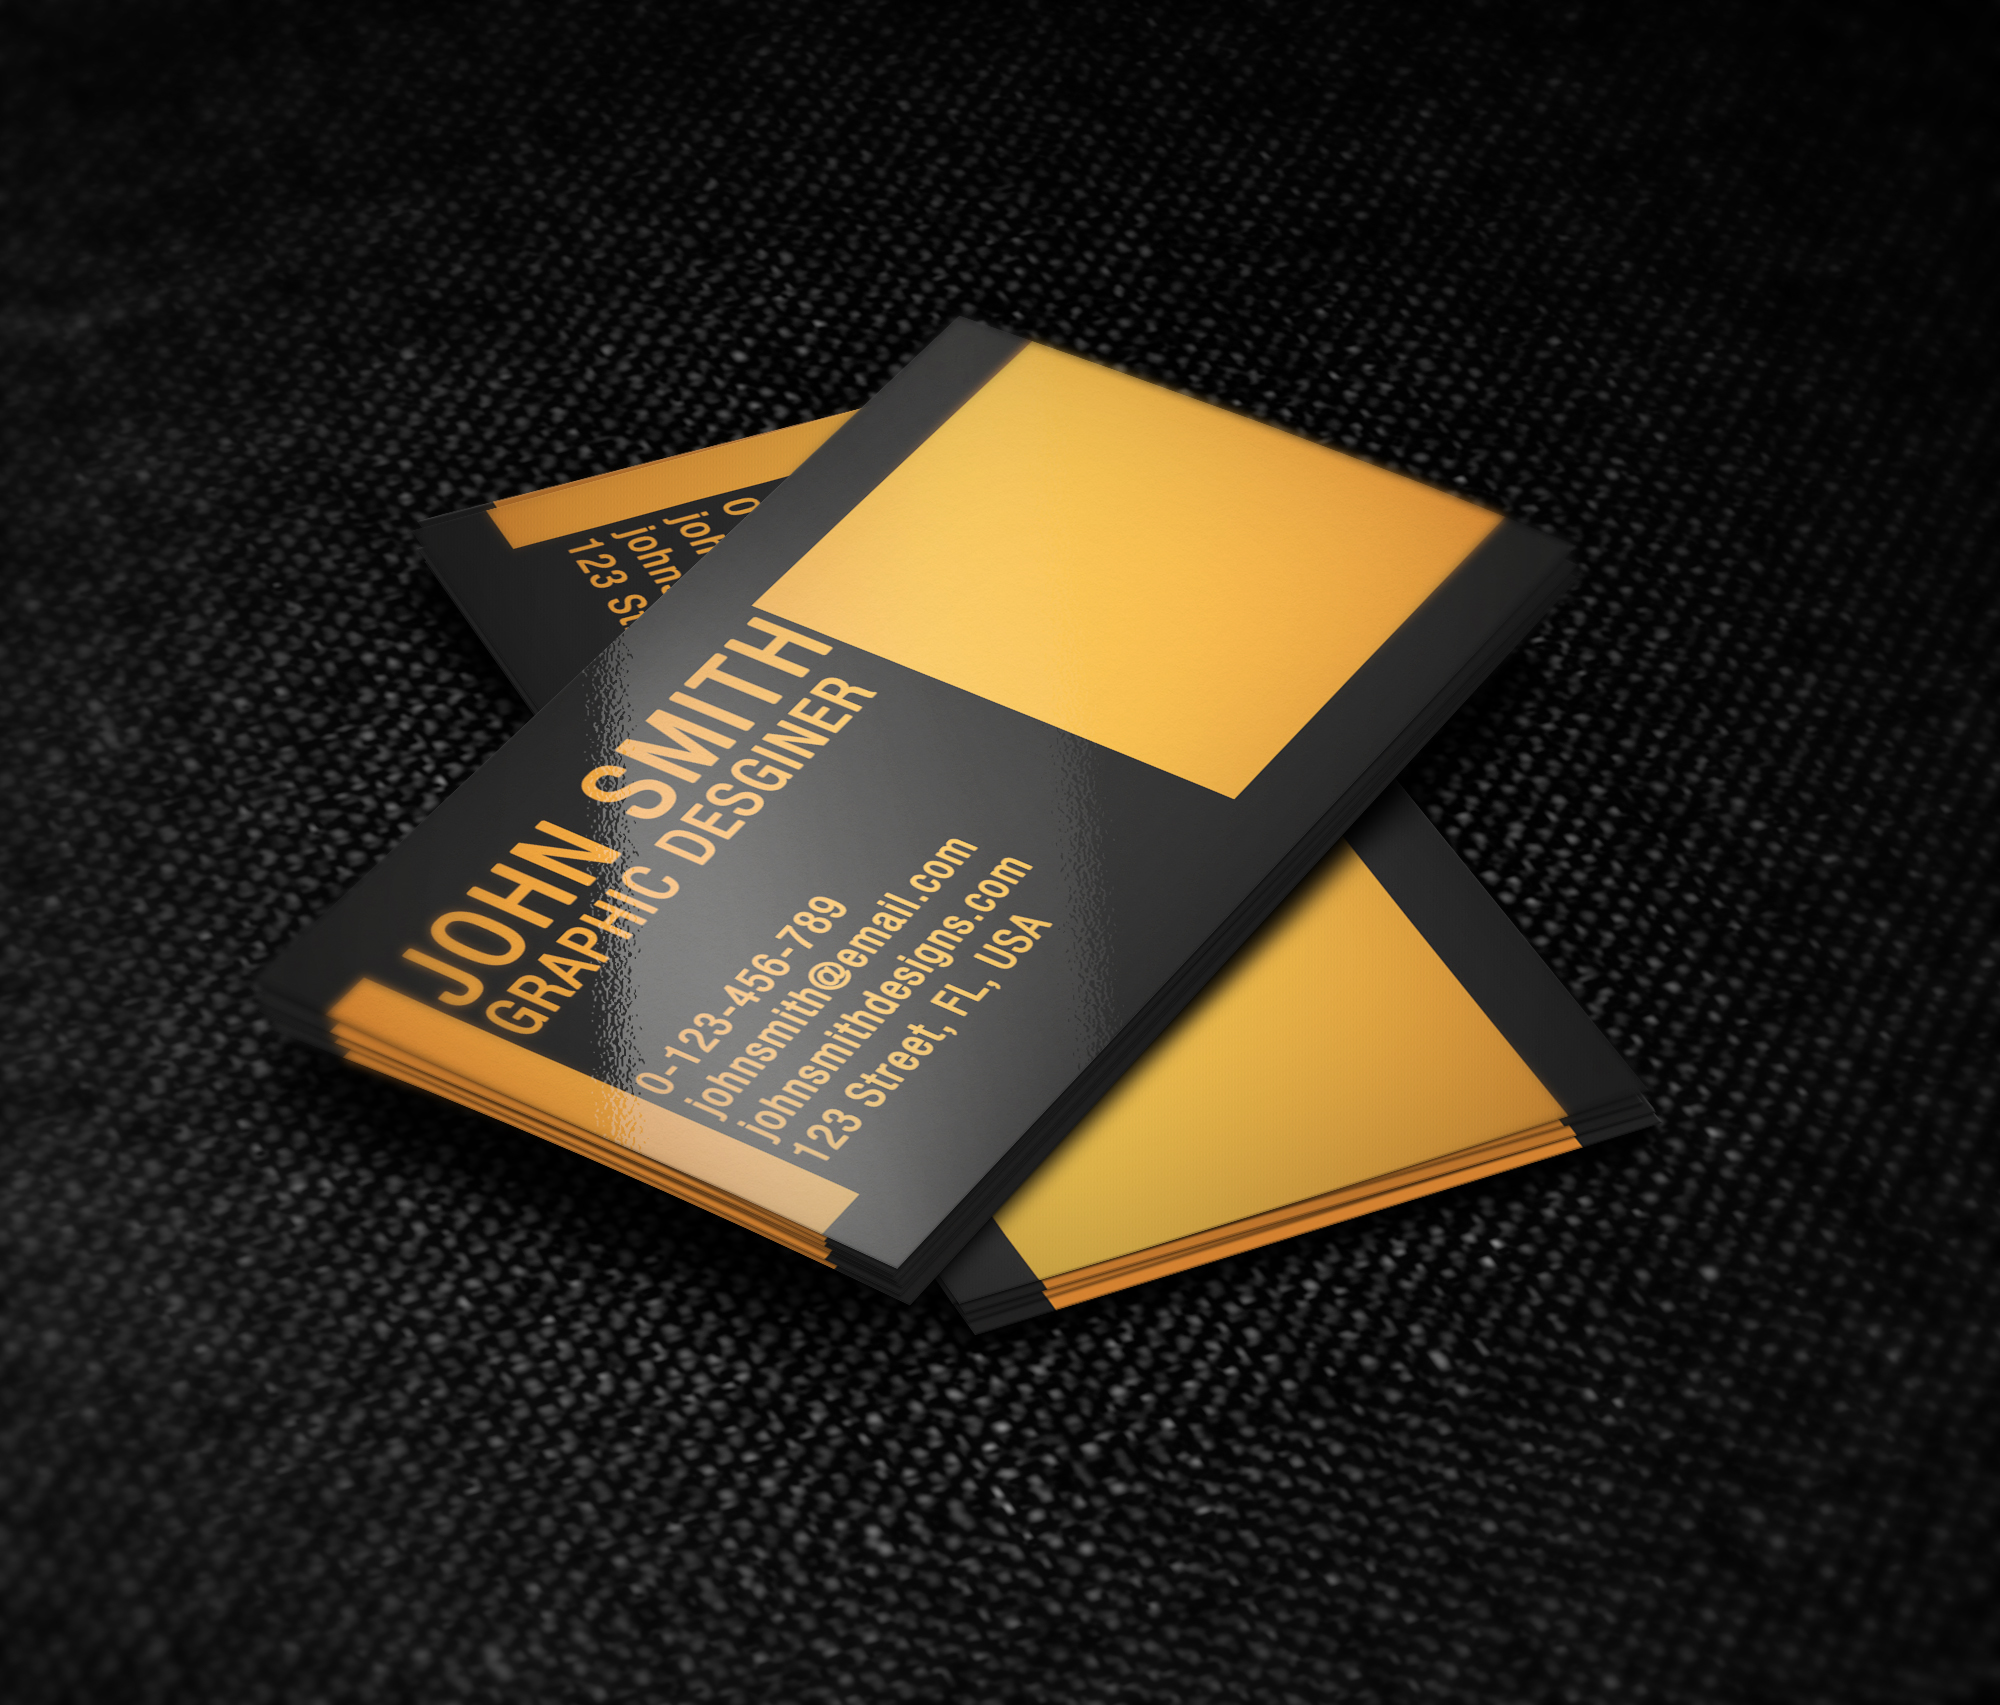 black and orange business card template by nik1010 on deviantart. Black Bedroom Furniture Sets. Home Design Ideas